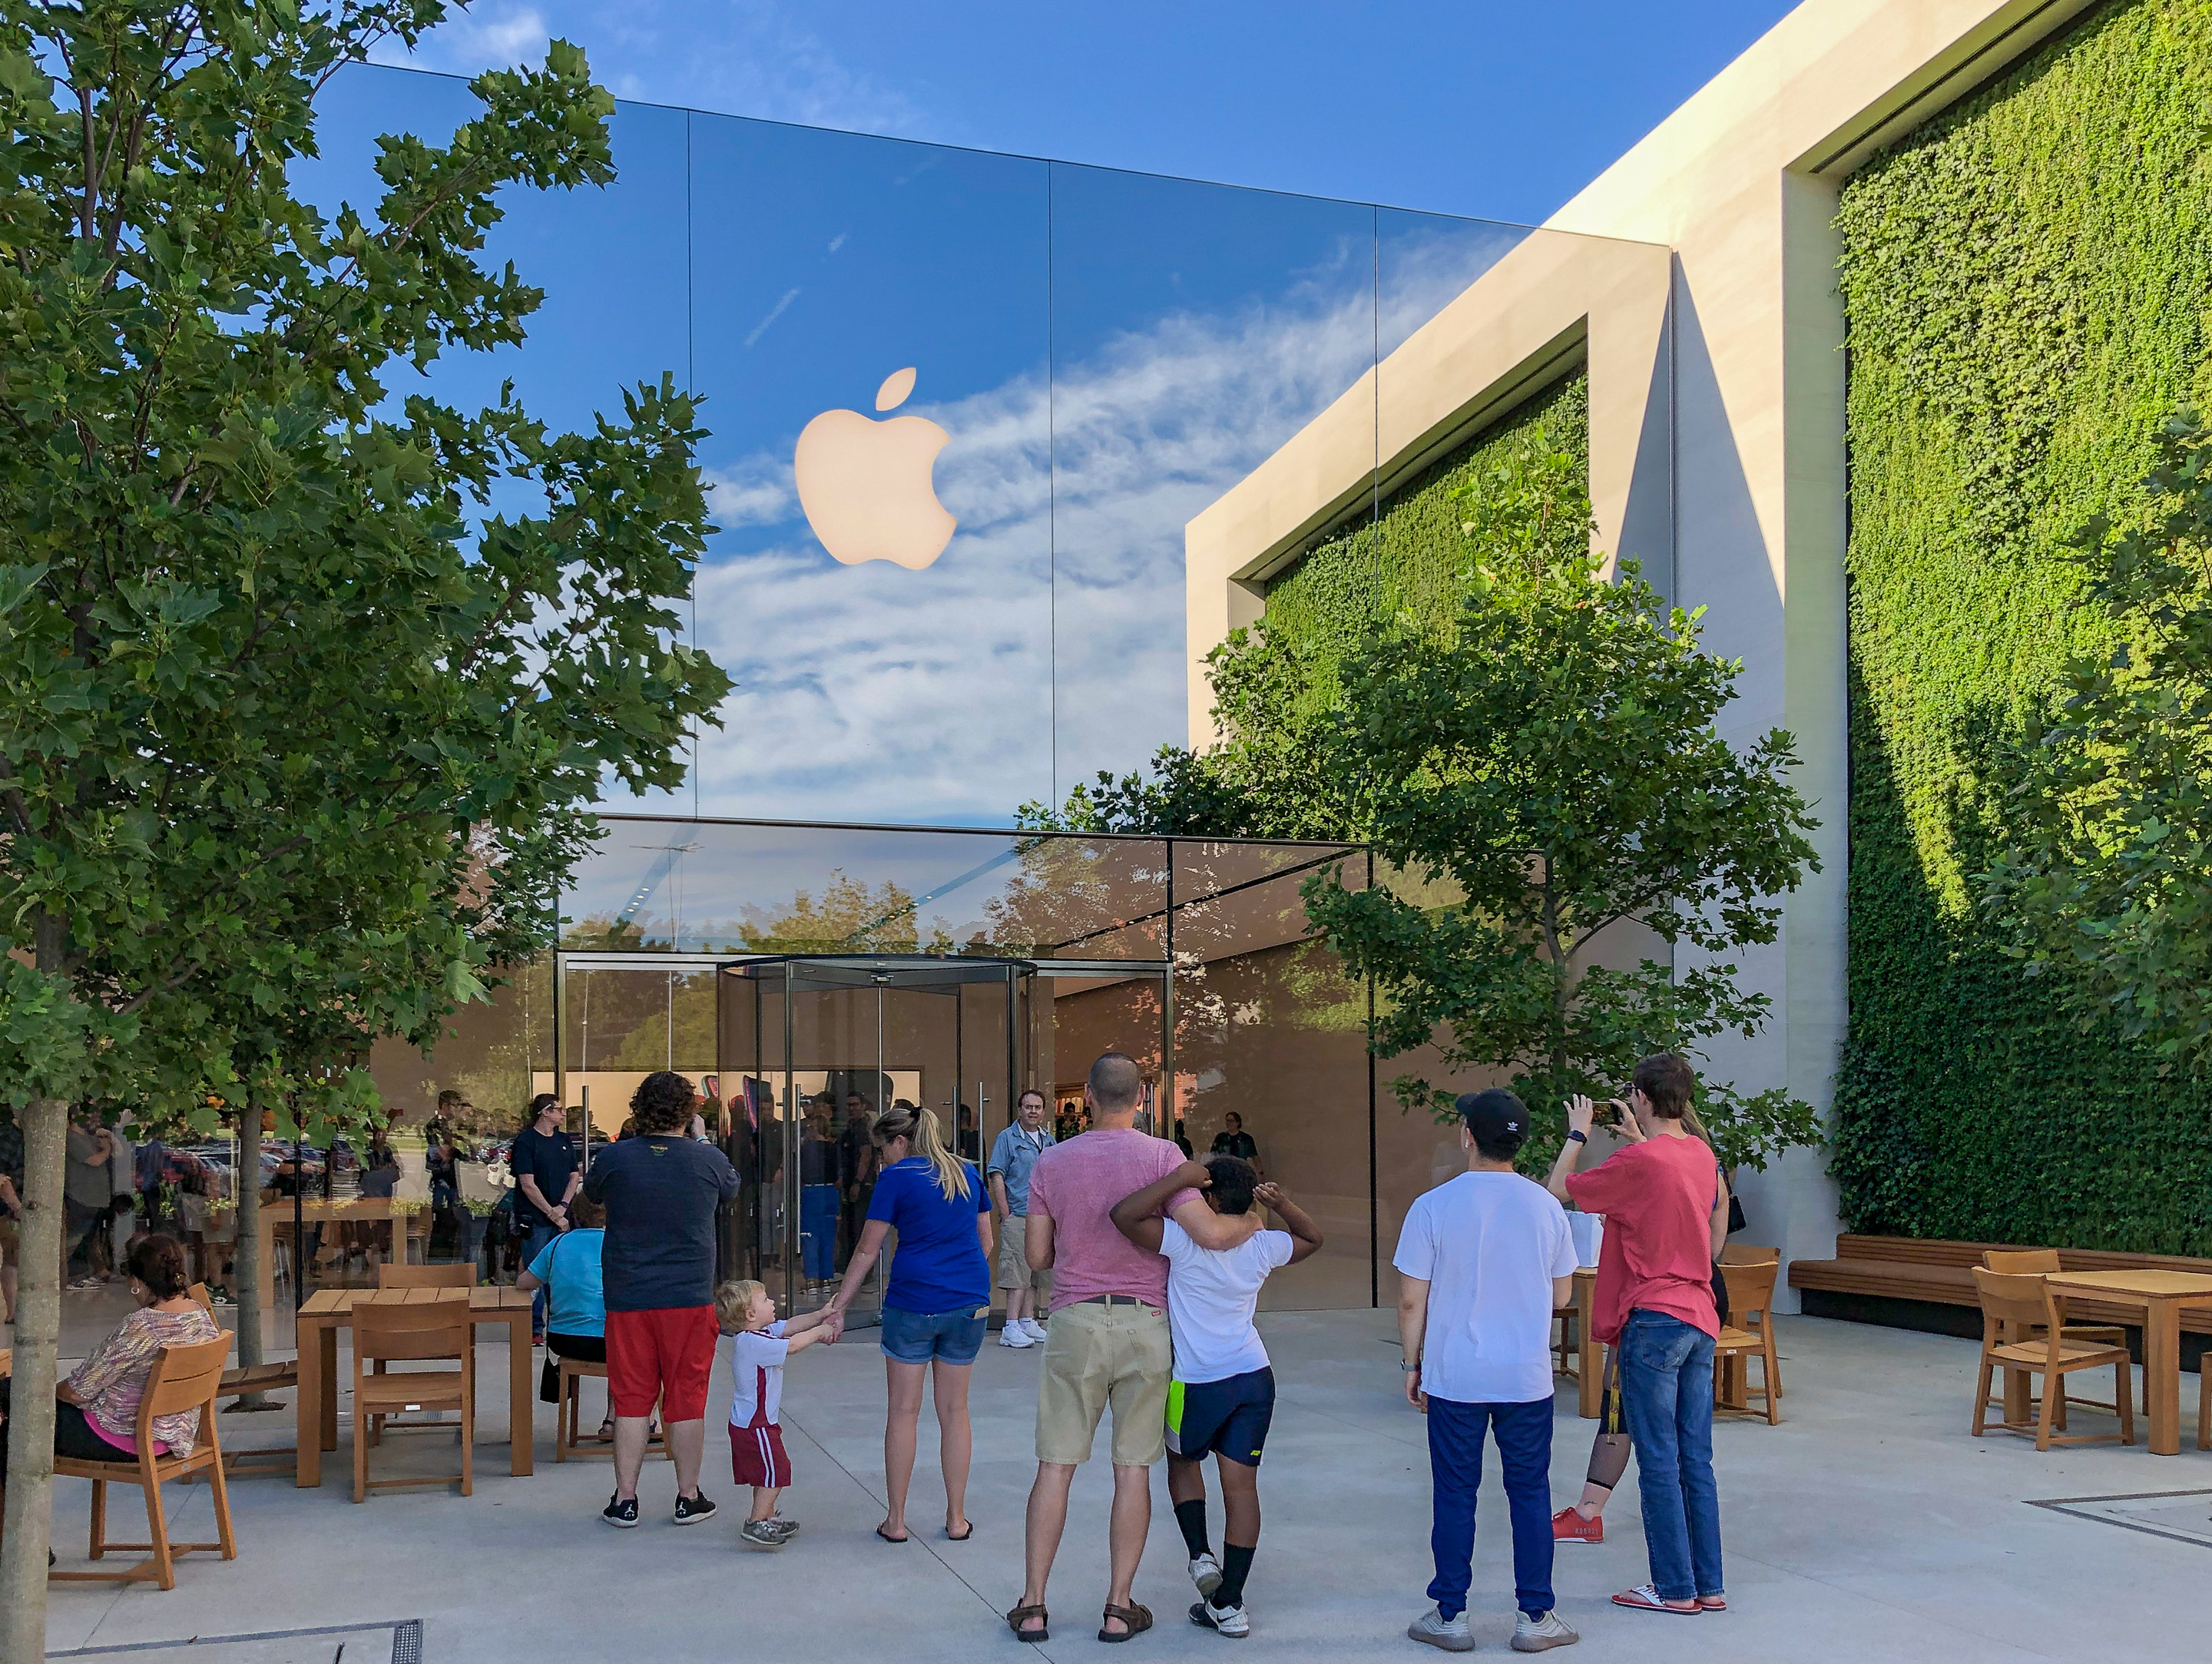 New Apple Stores open in Louisville and The Woodlands: green walls, mirrored facade, more